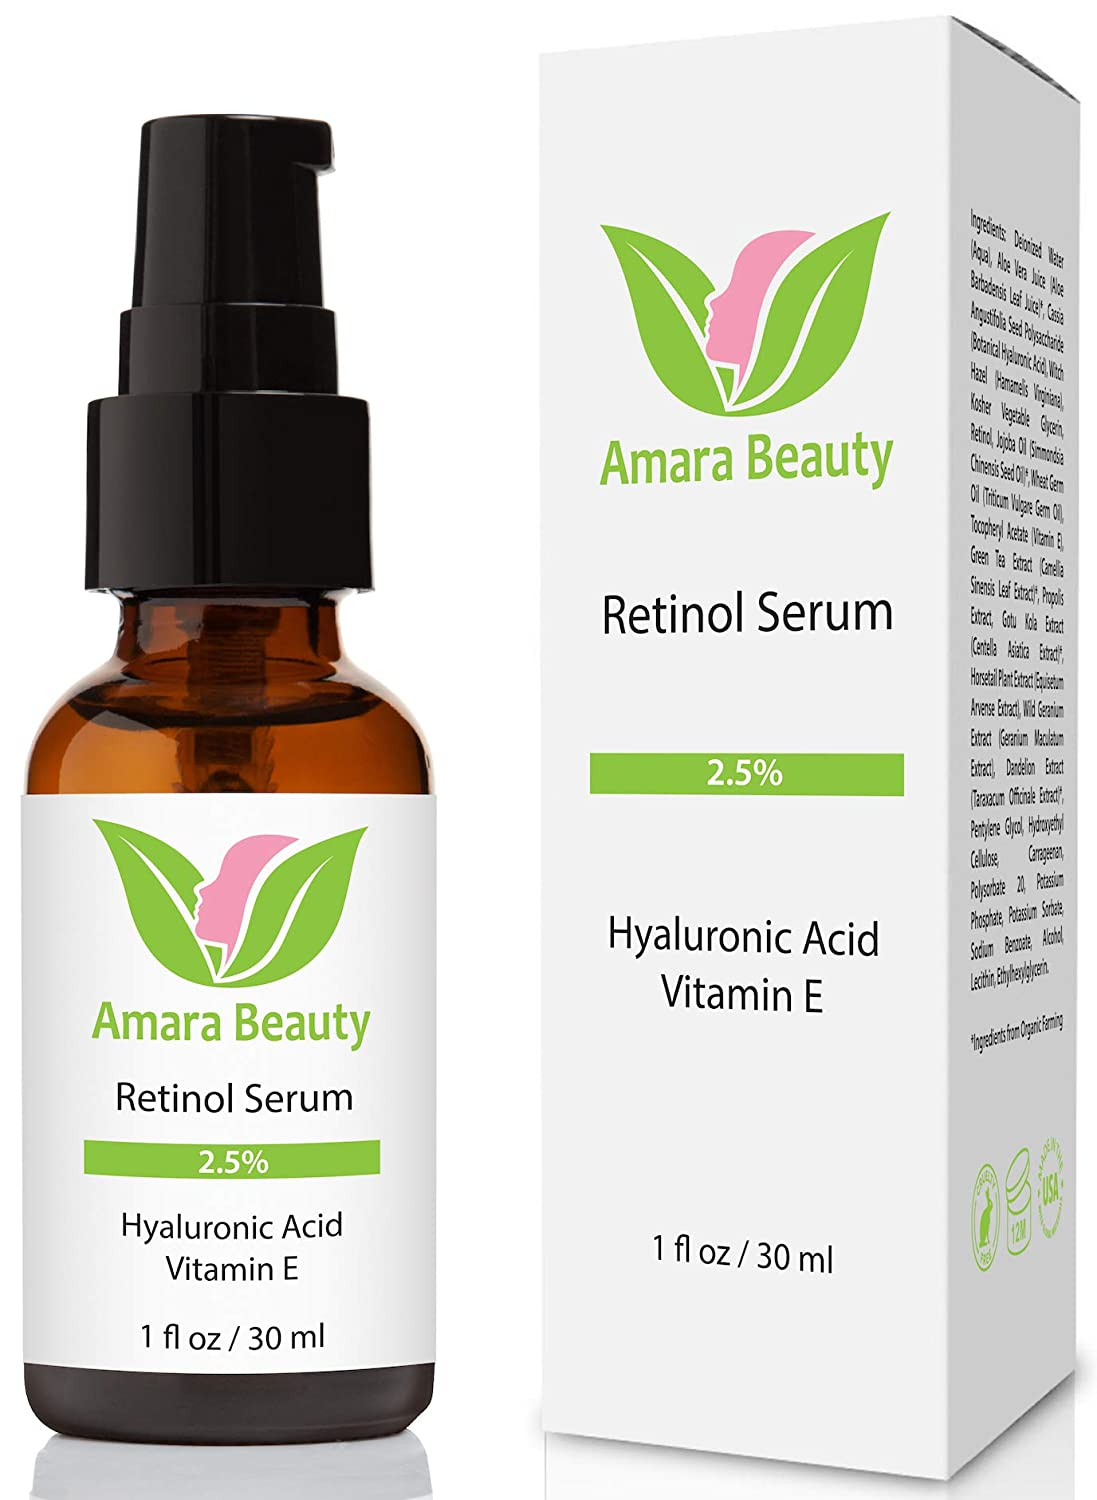 Retinol Serum 2.5% with Hyaluronic Acid & Vitamin E